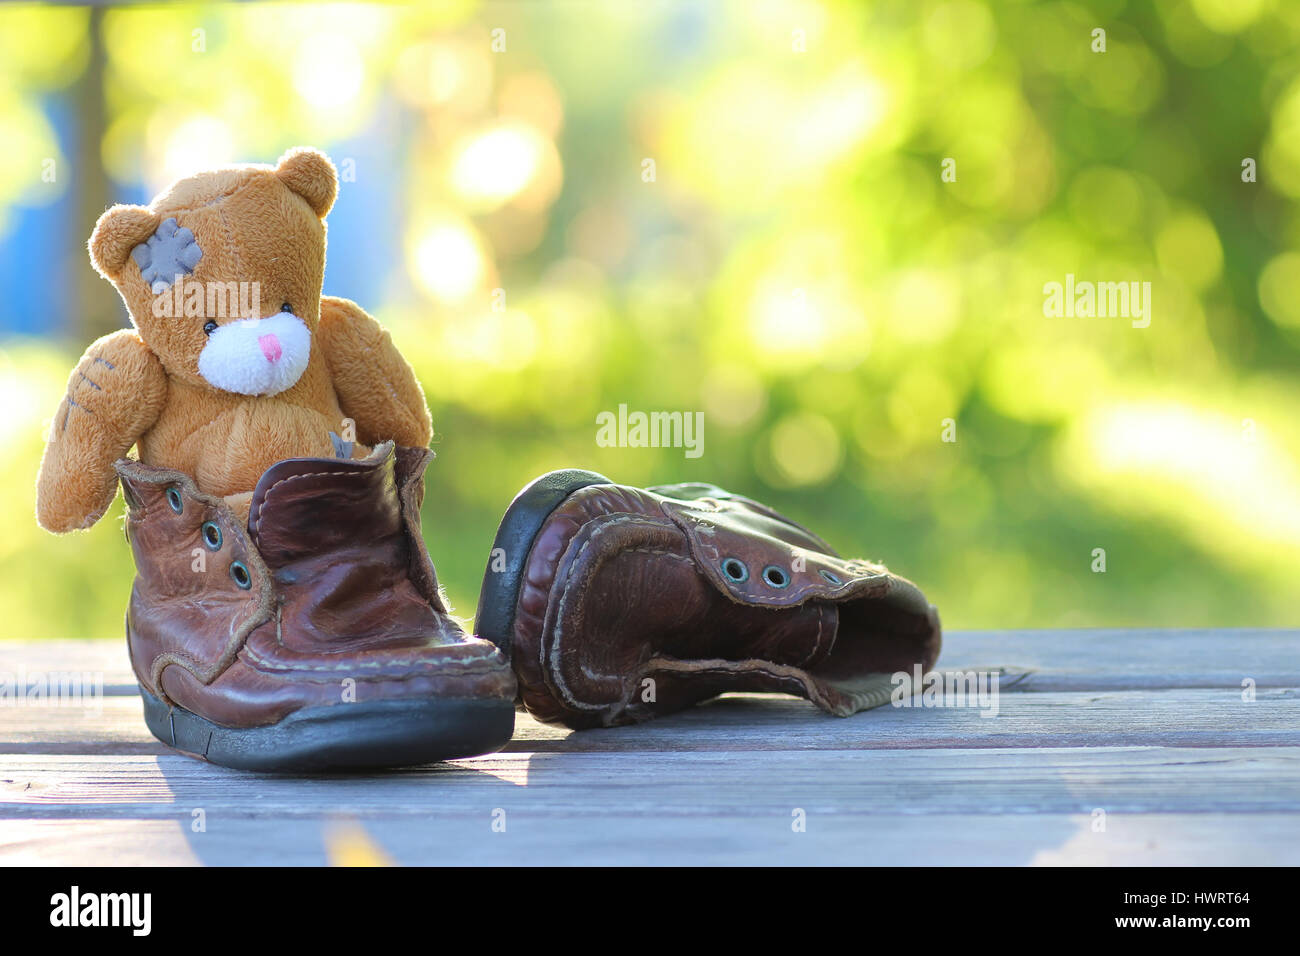 toy teddy bear table outdoor - Stock Image